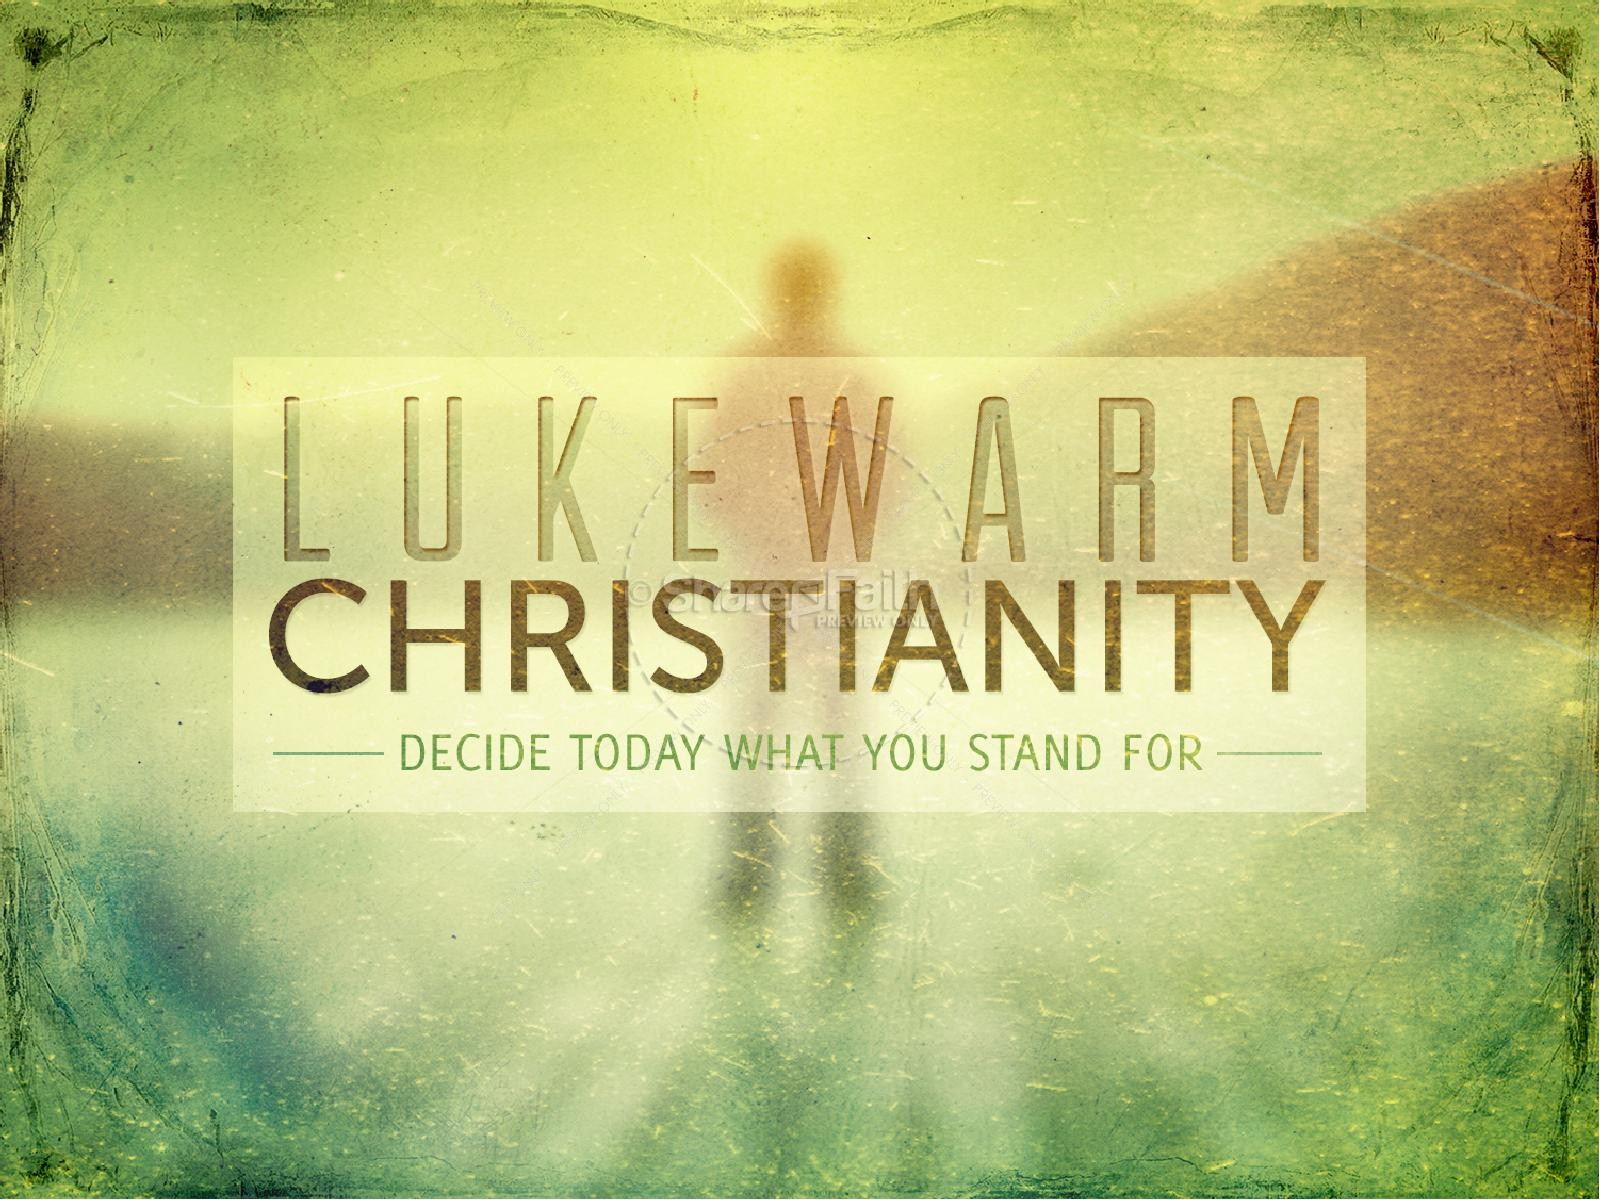 revelation 3 16 lukewarm christianity church sermon